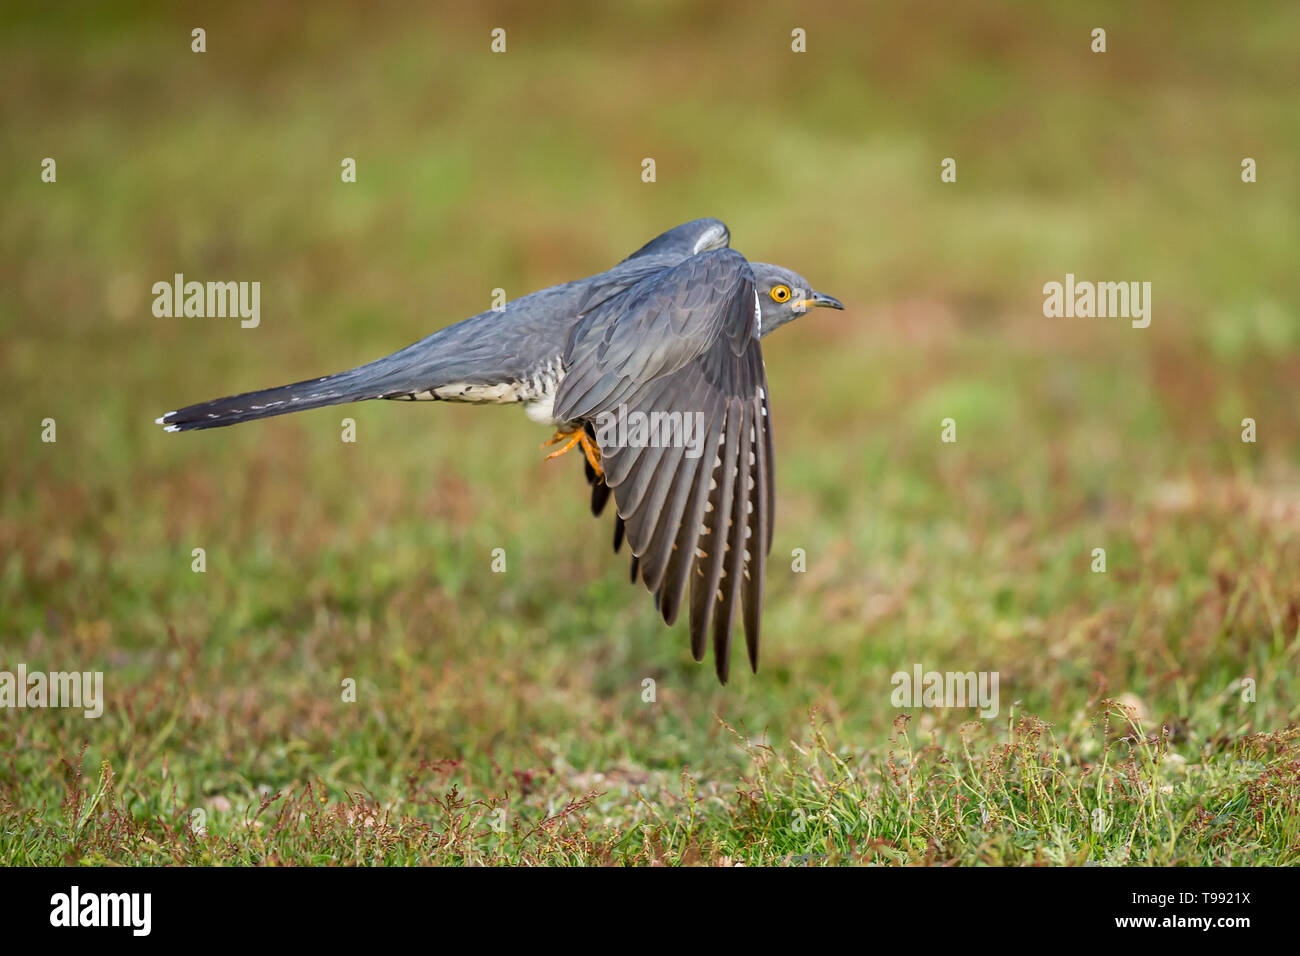 A Common cuckoo in flight up close - Stock Image